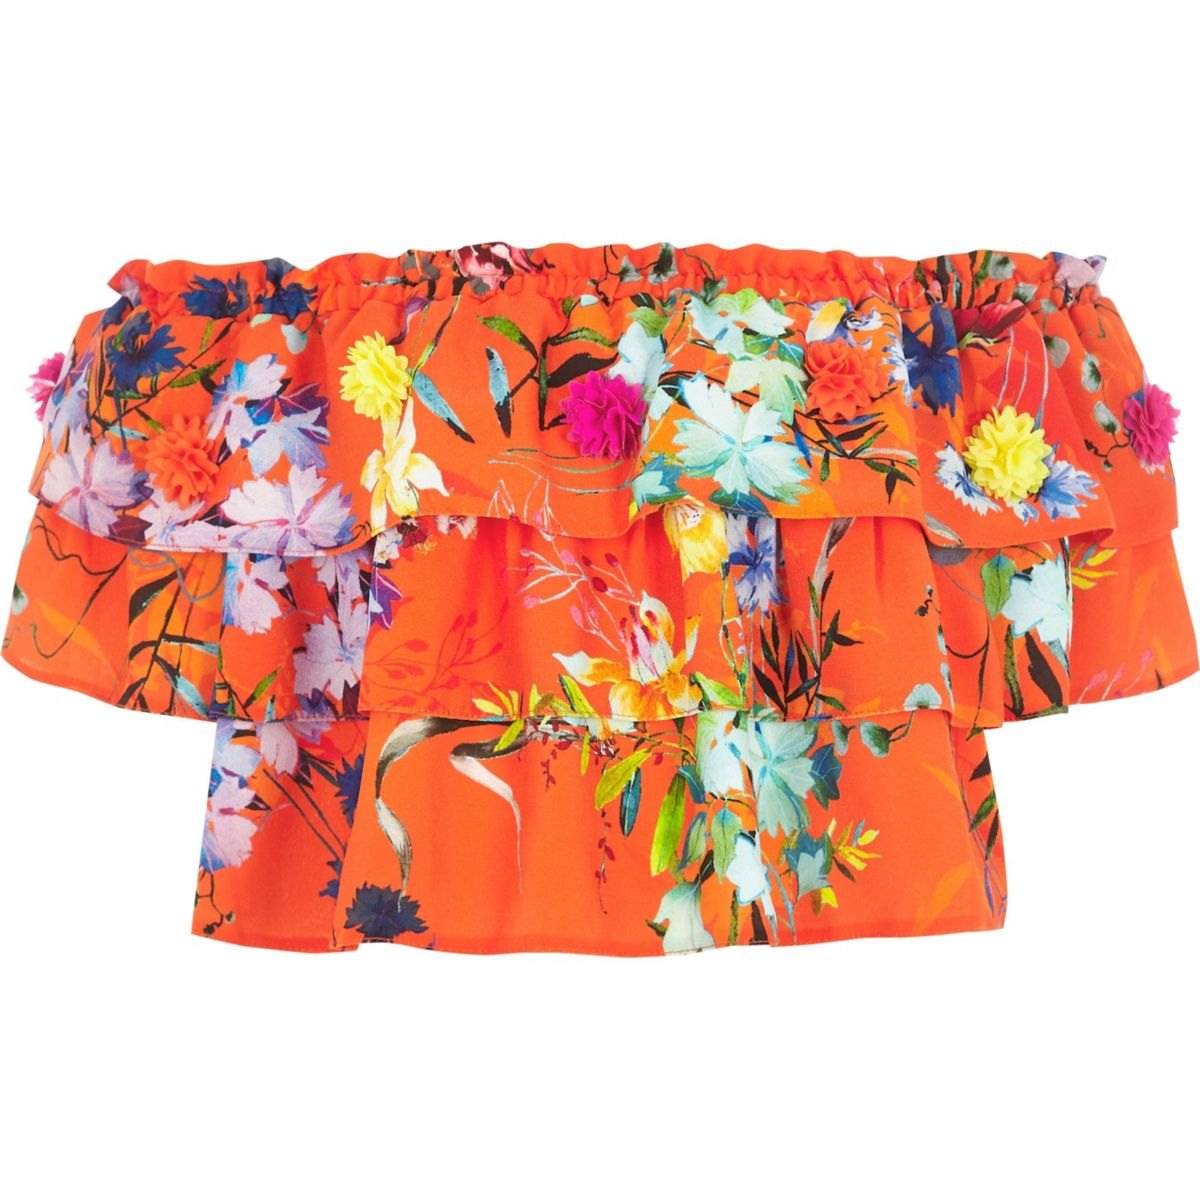 Girls orange RI Studio floral print frill top